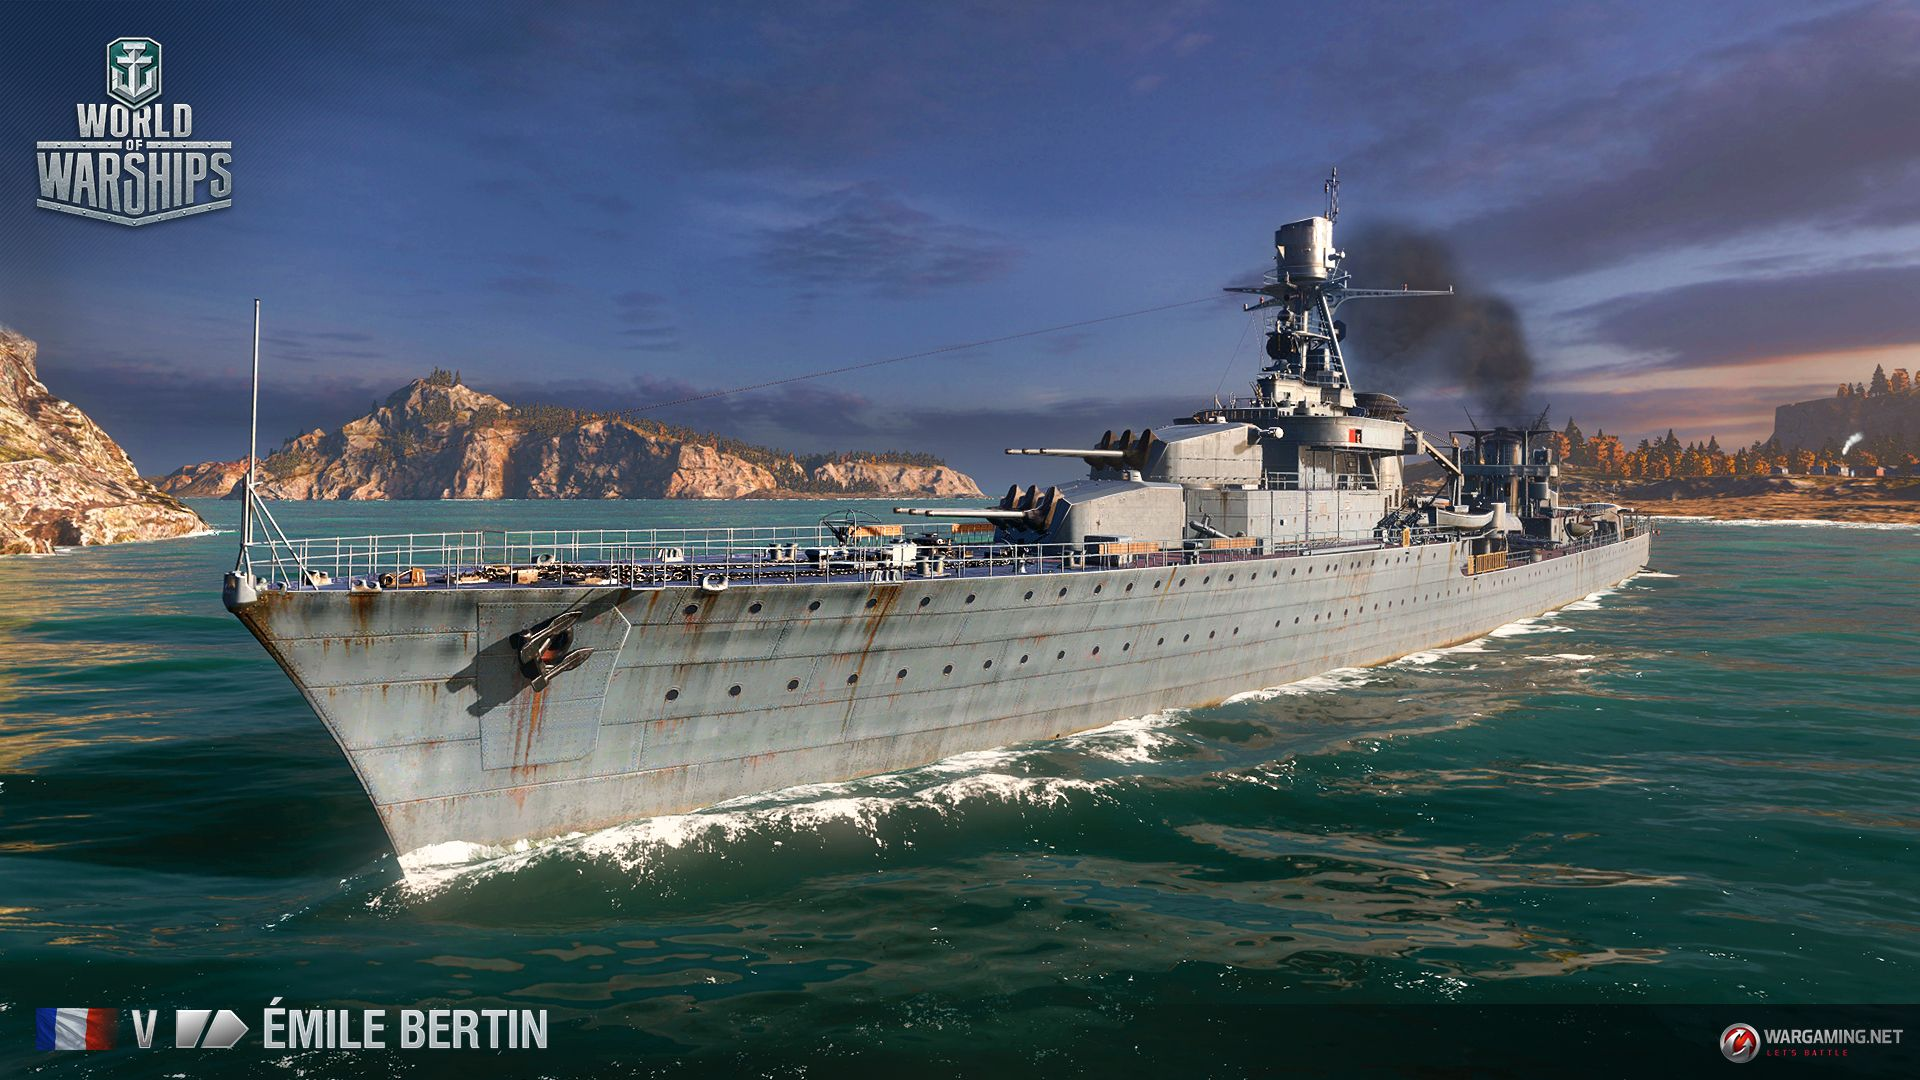 World of Warships emile bertin